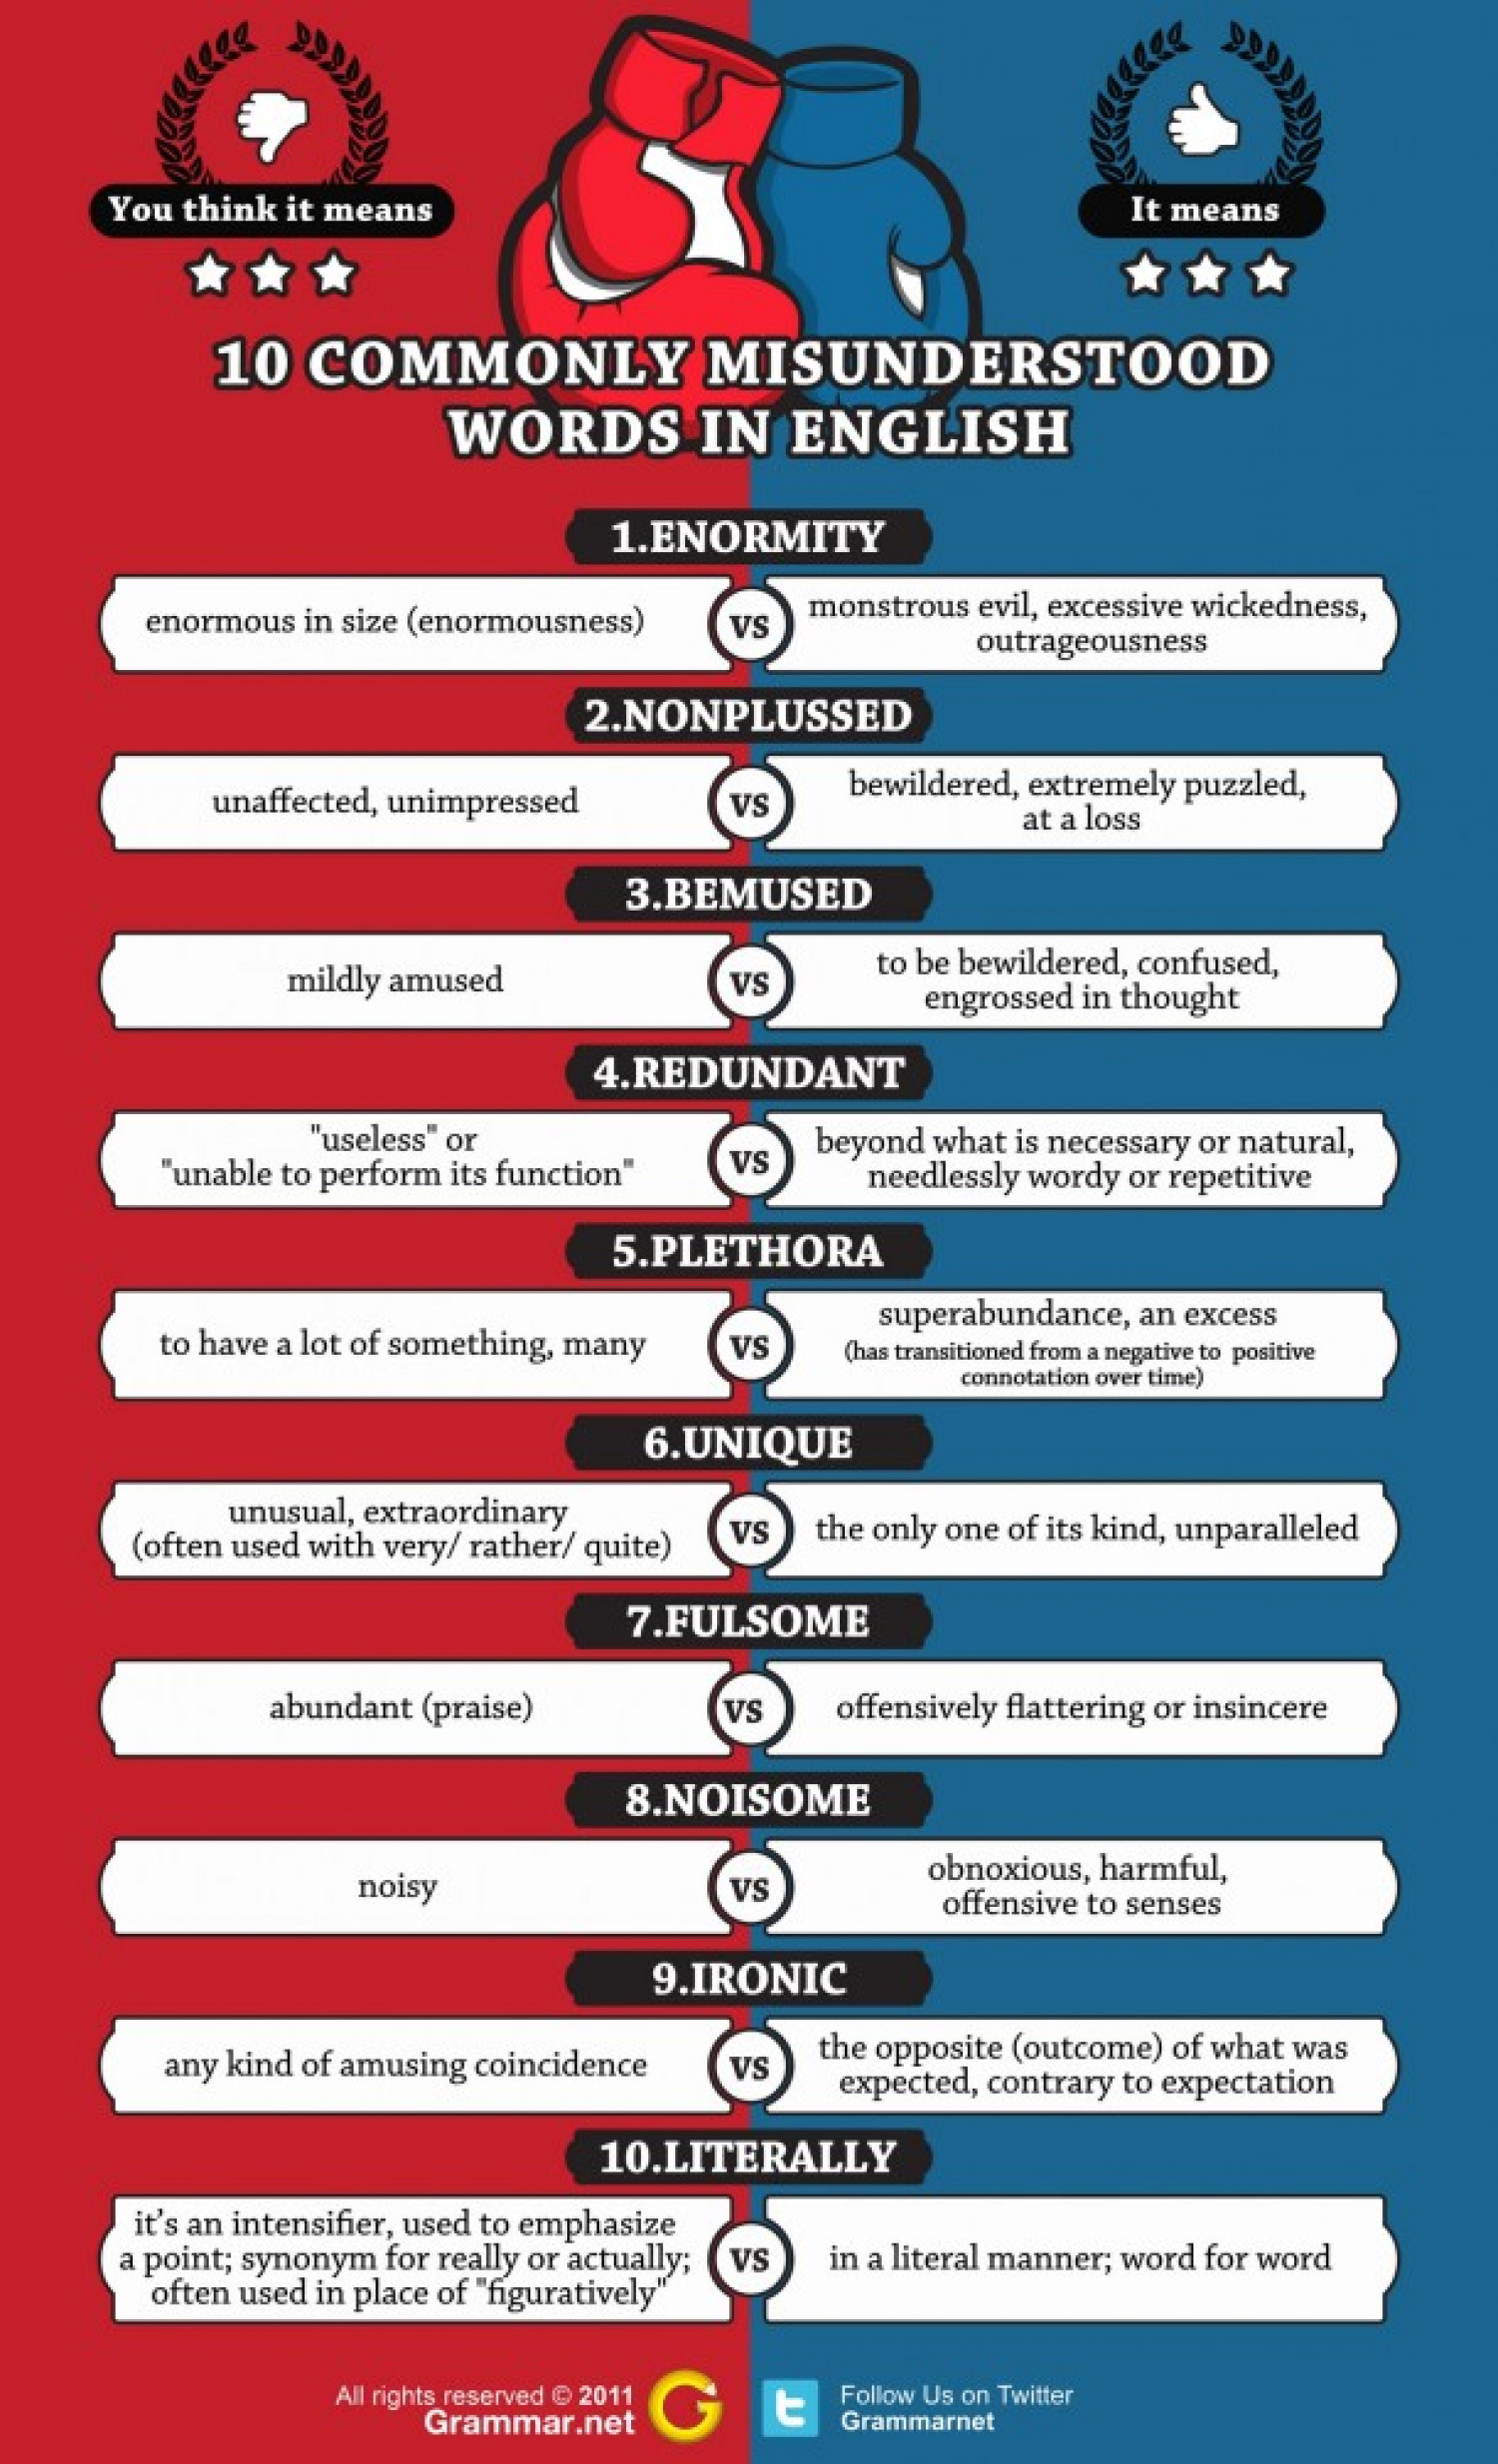 10 Commonly Misunderstood Words in English  Visually